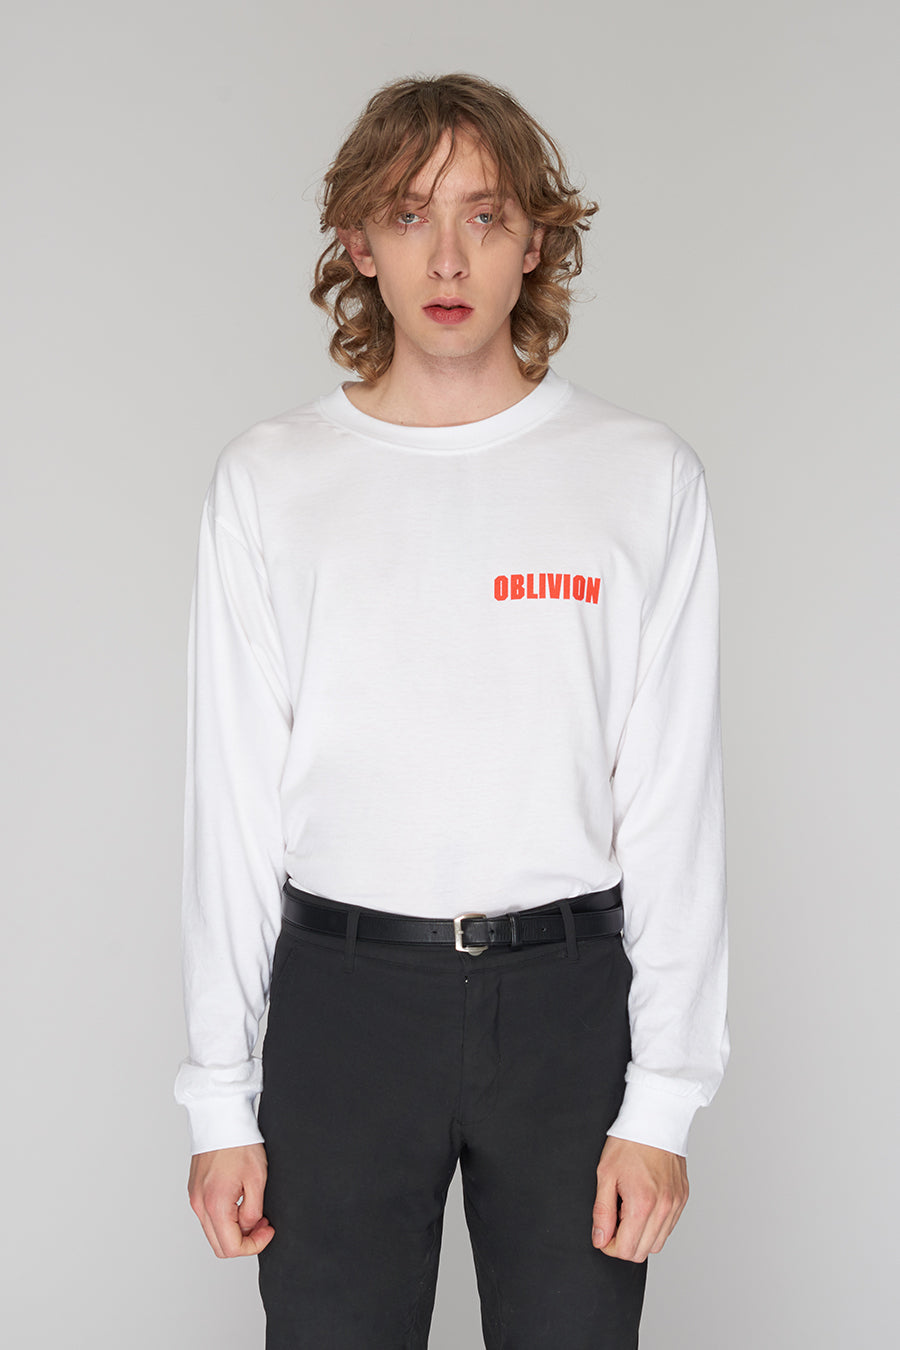 Long Clothing Oblivion Long Sleeve White 5